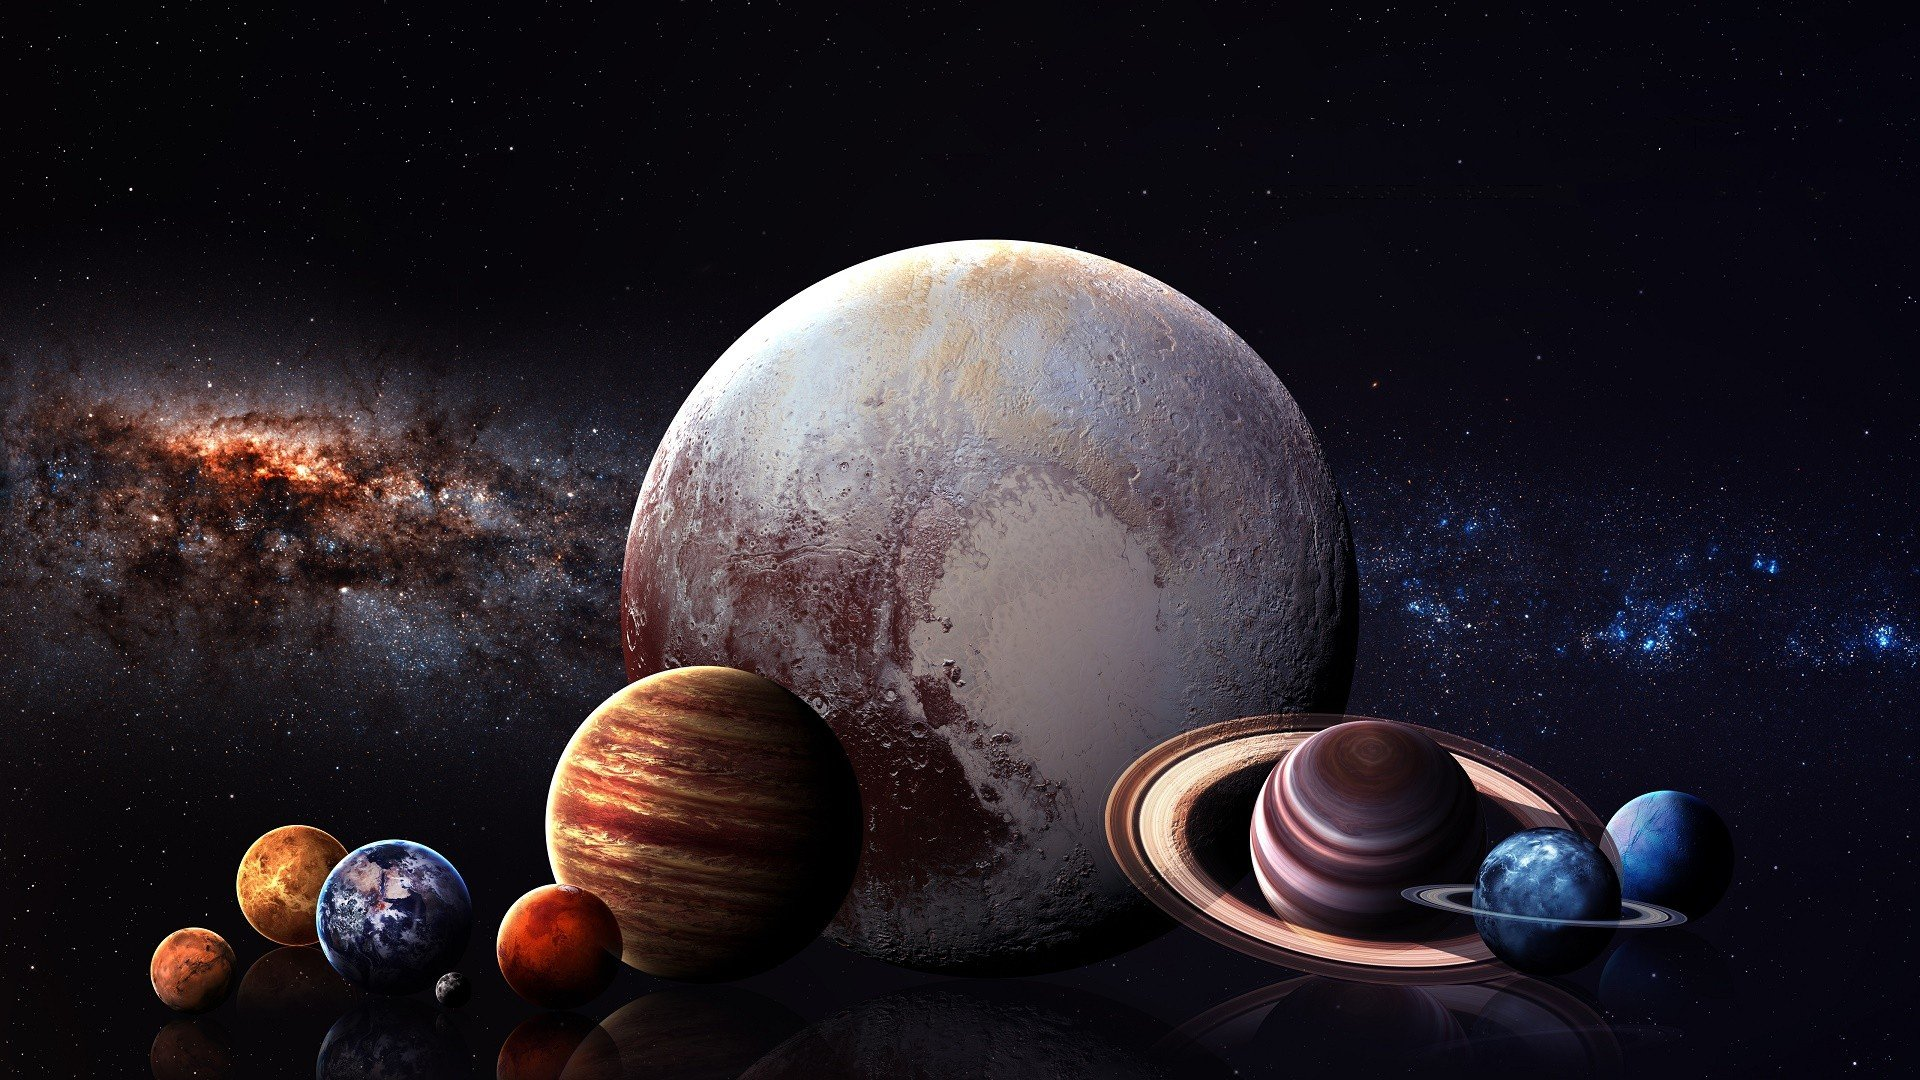 Milky Way Mercury Venus Earth Mars Jupiter Saturn Uranus Neptune Pluto Moon Reflection HD Wallpapers Desktop And Mobile Images Photos